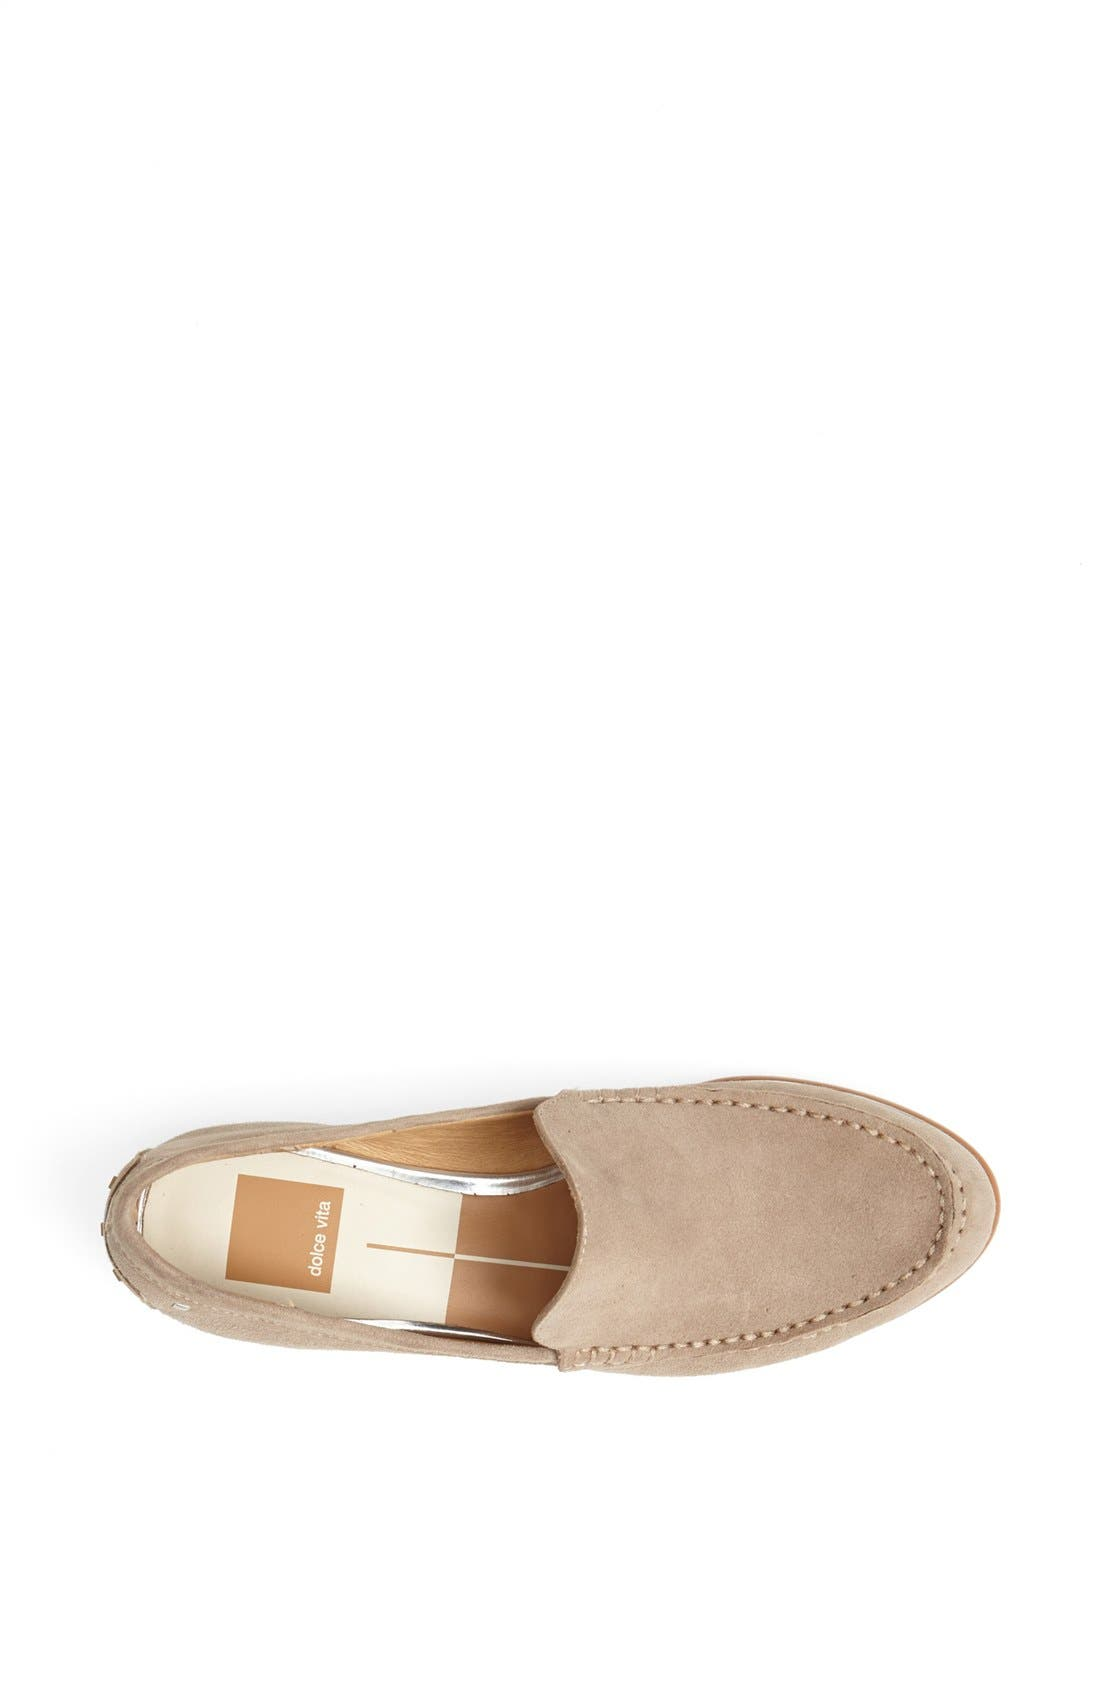 Alternate Image 3  - Dolce Vita 'Venka' Leather Flat